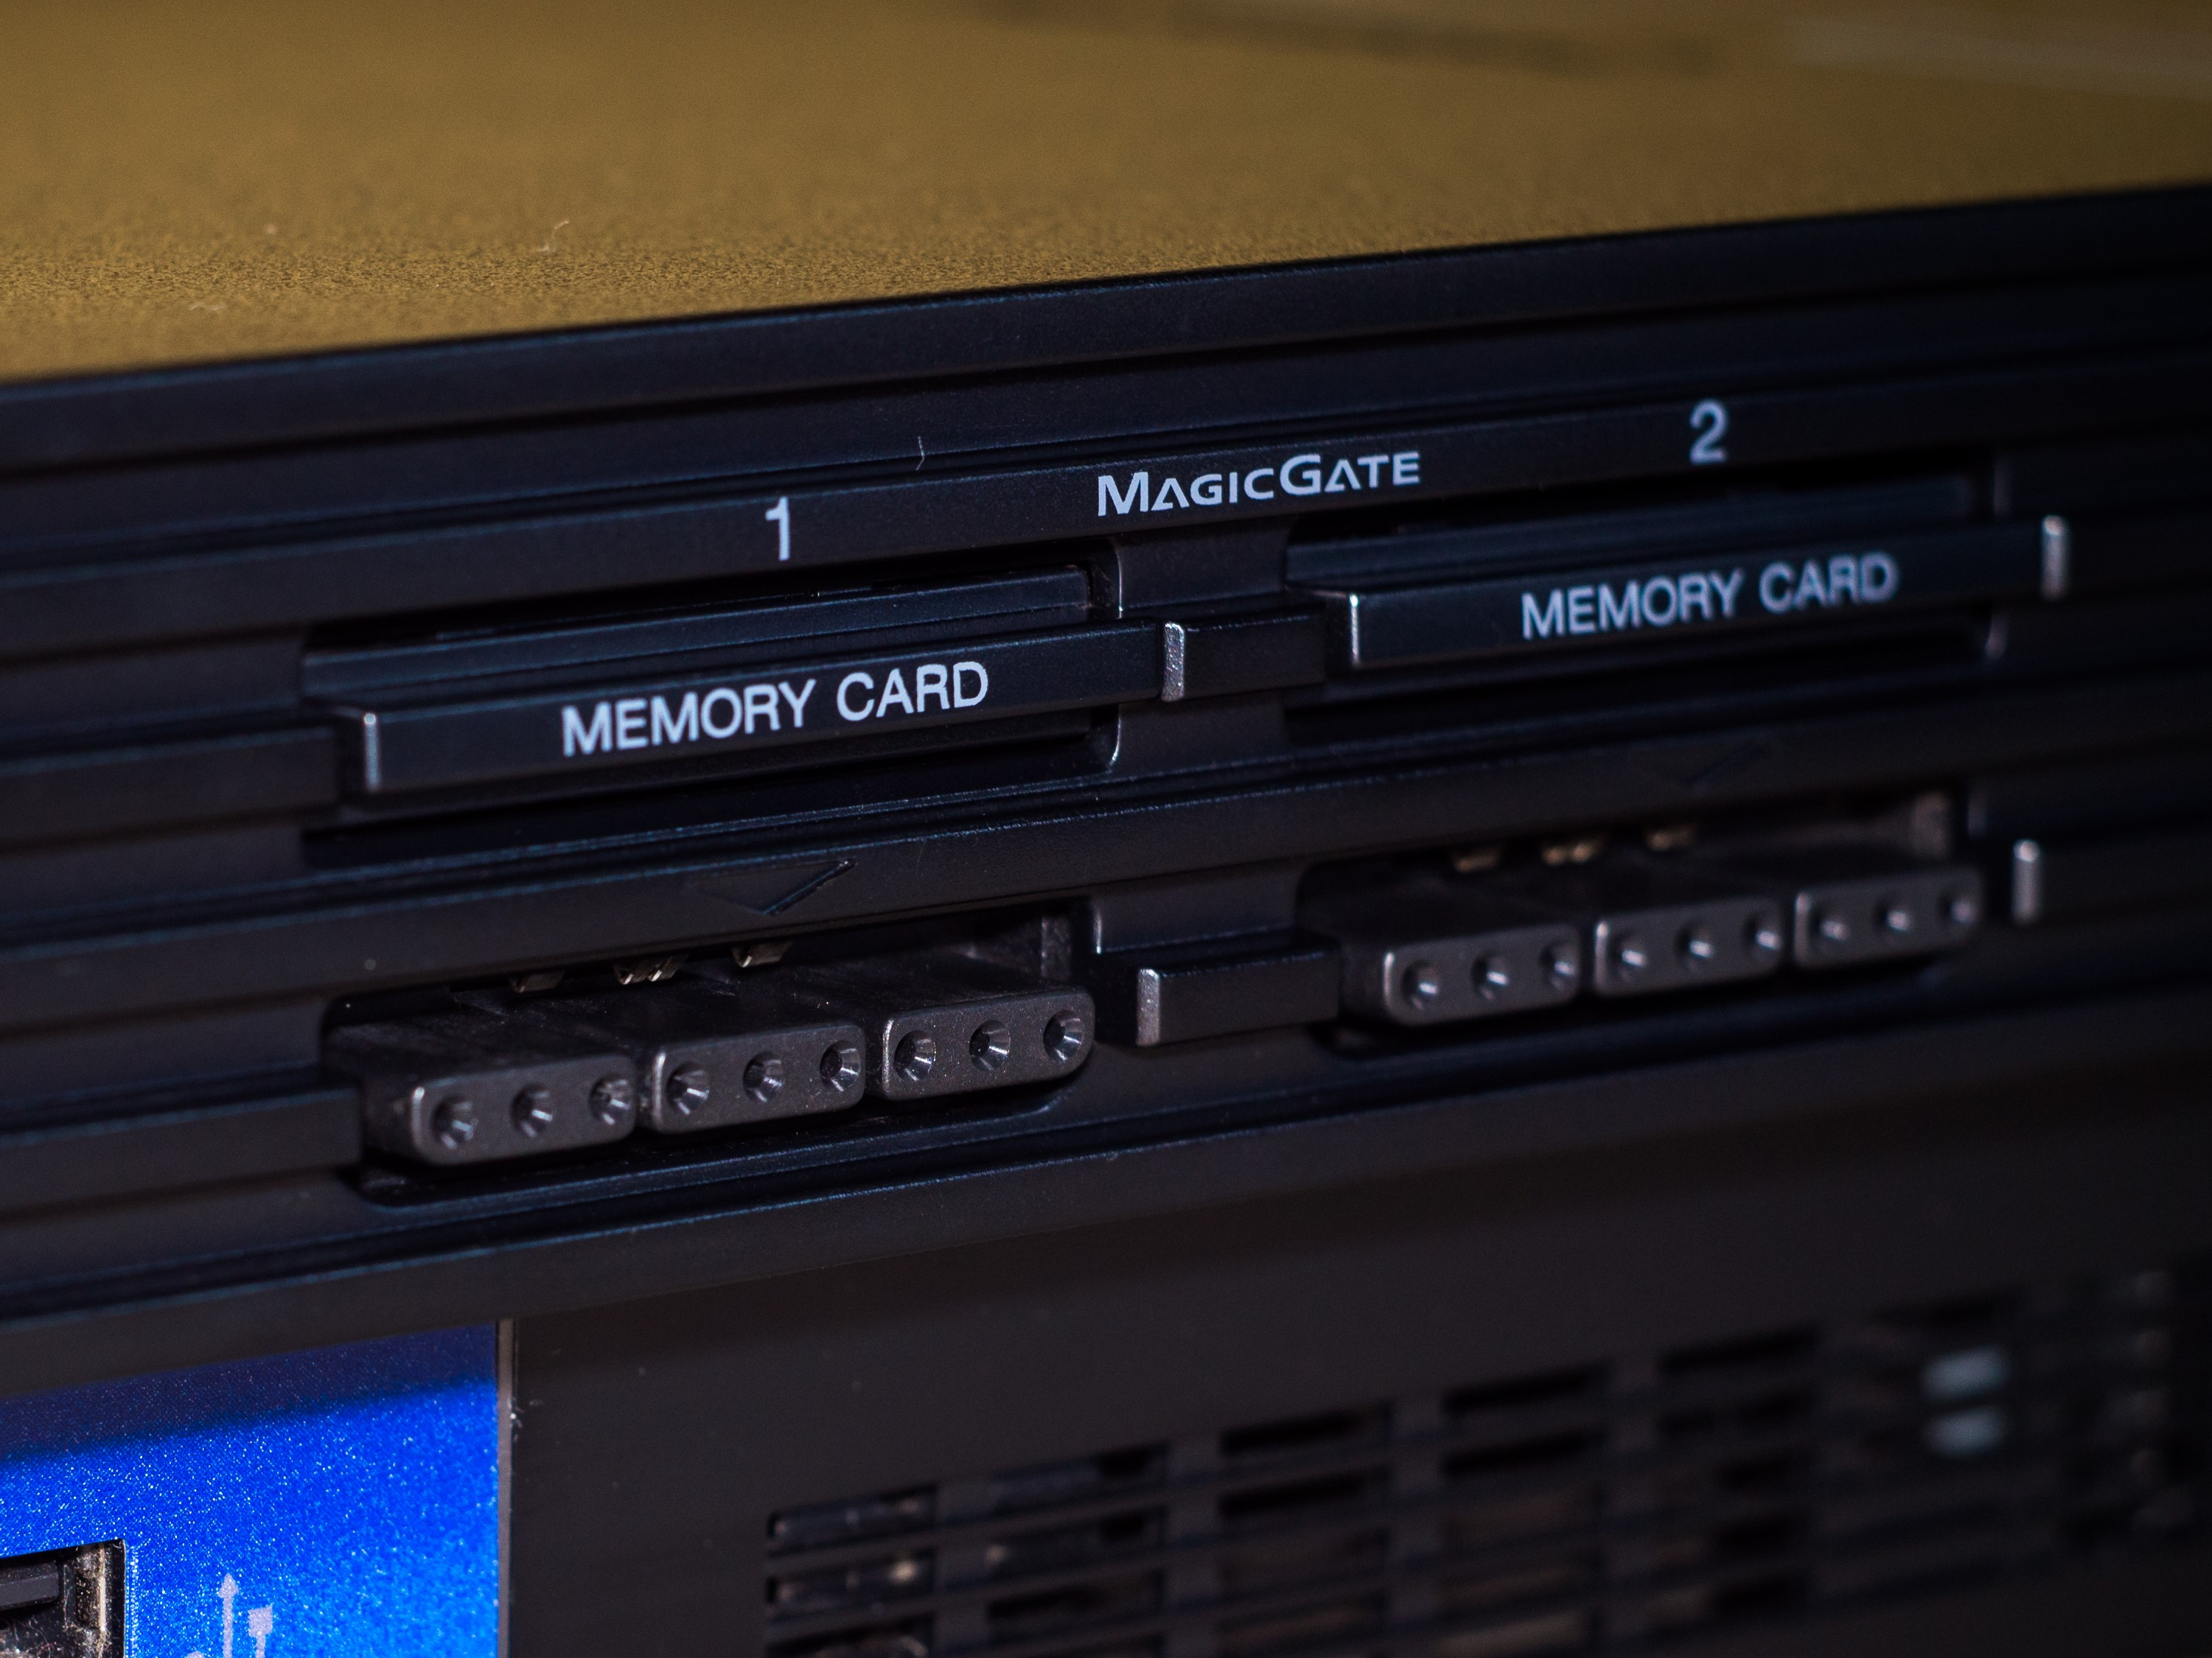 PS2 - Free Memory Card Boot v1 964 Release - A Series of new updates